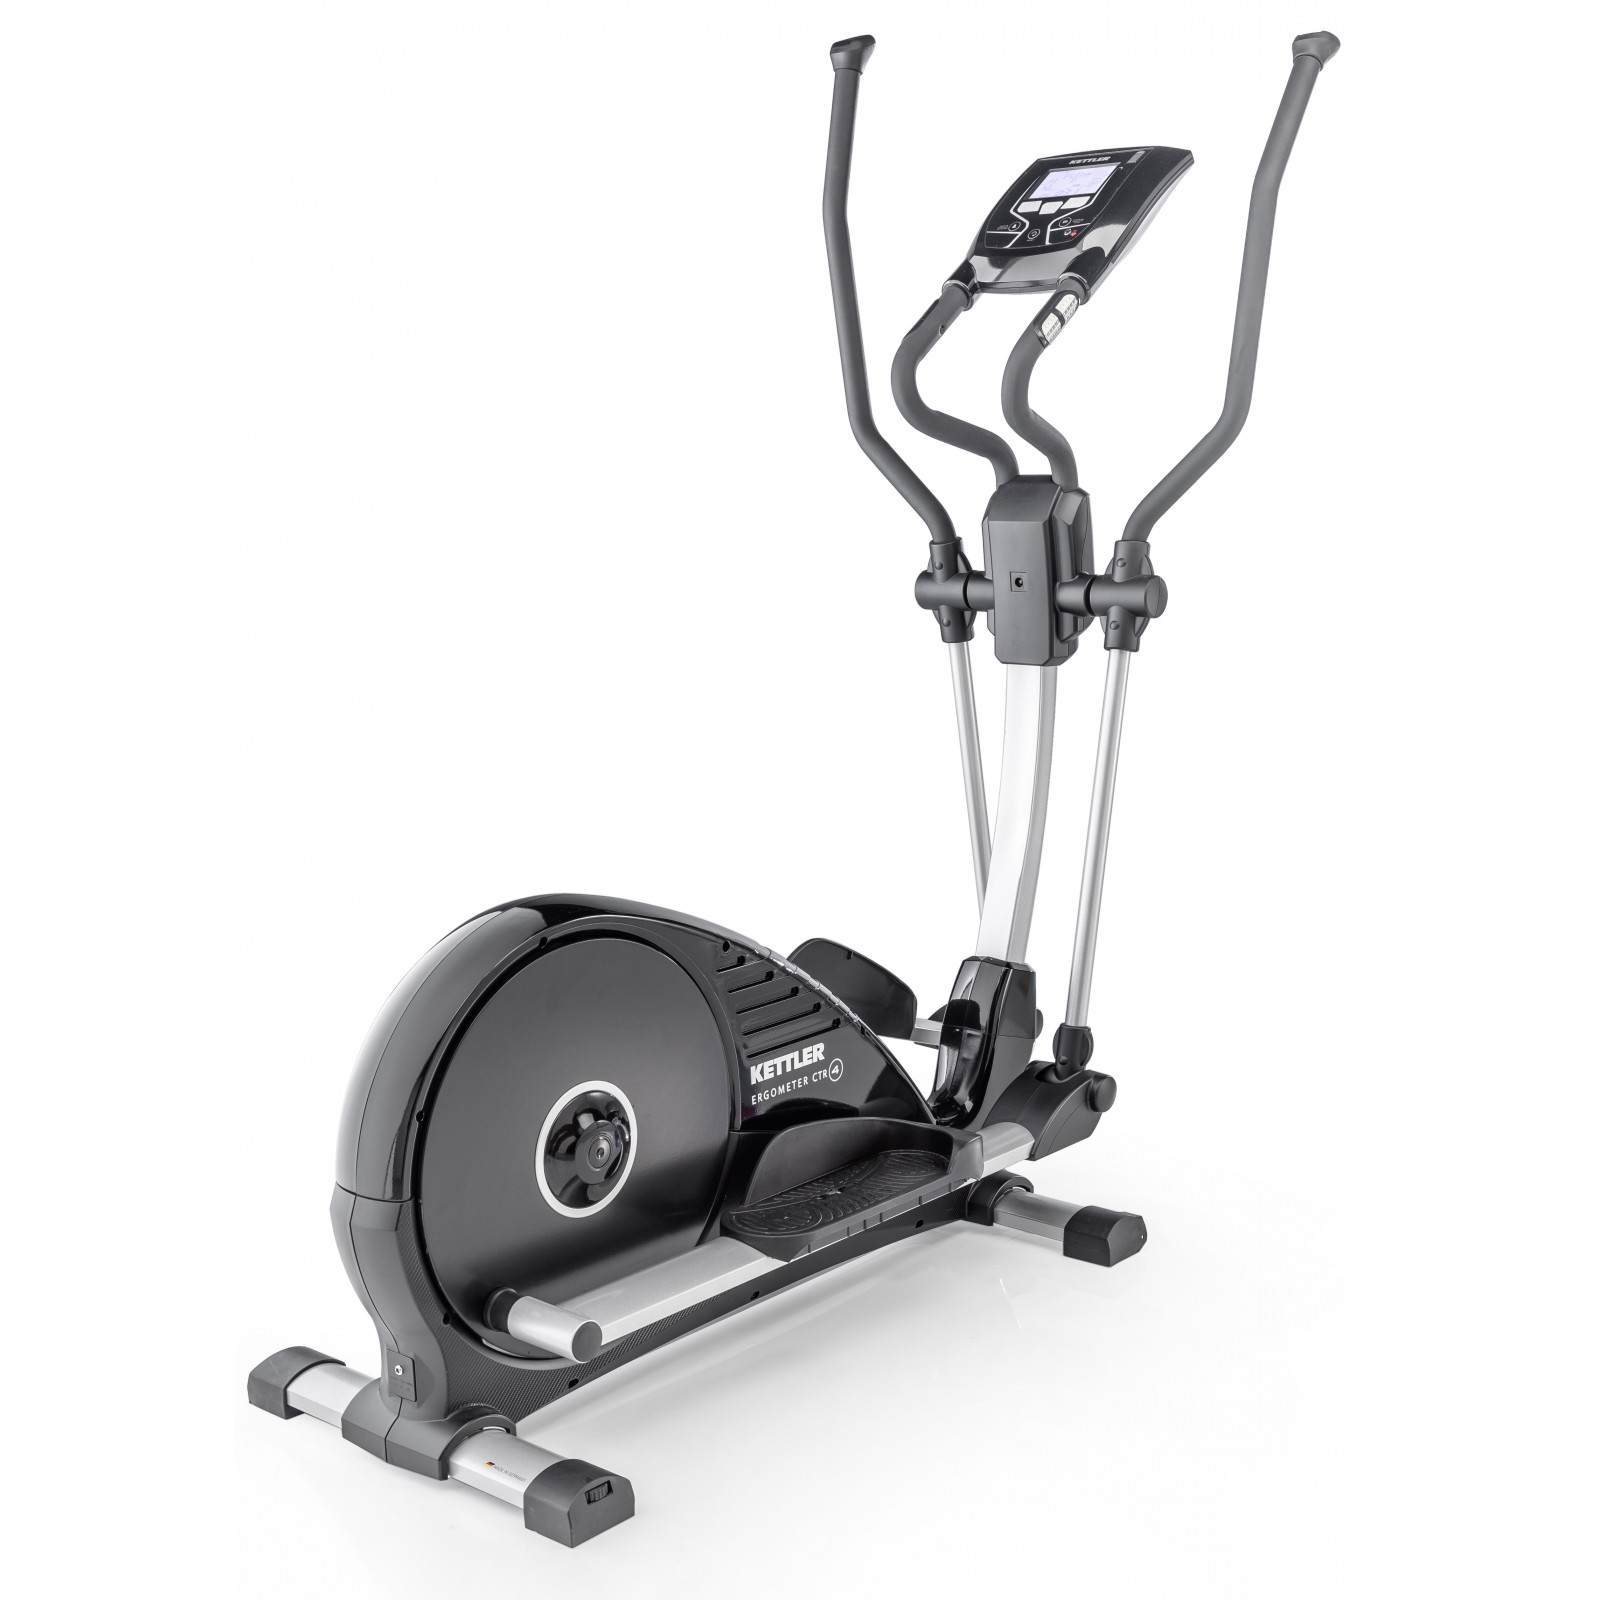 Kettler Fitness Kettler Elliptical Cross Trainer Ctr4 Buy With 347